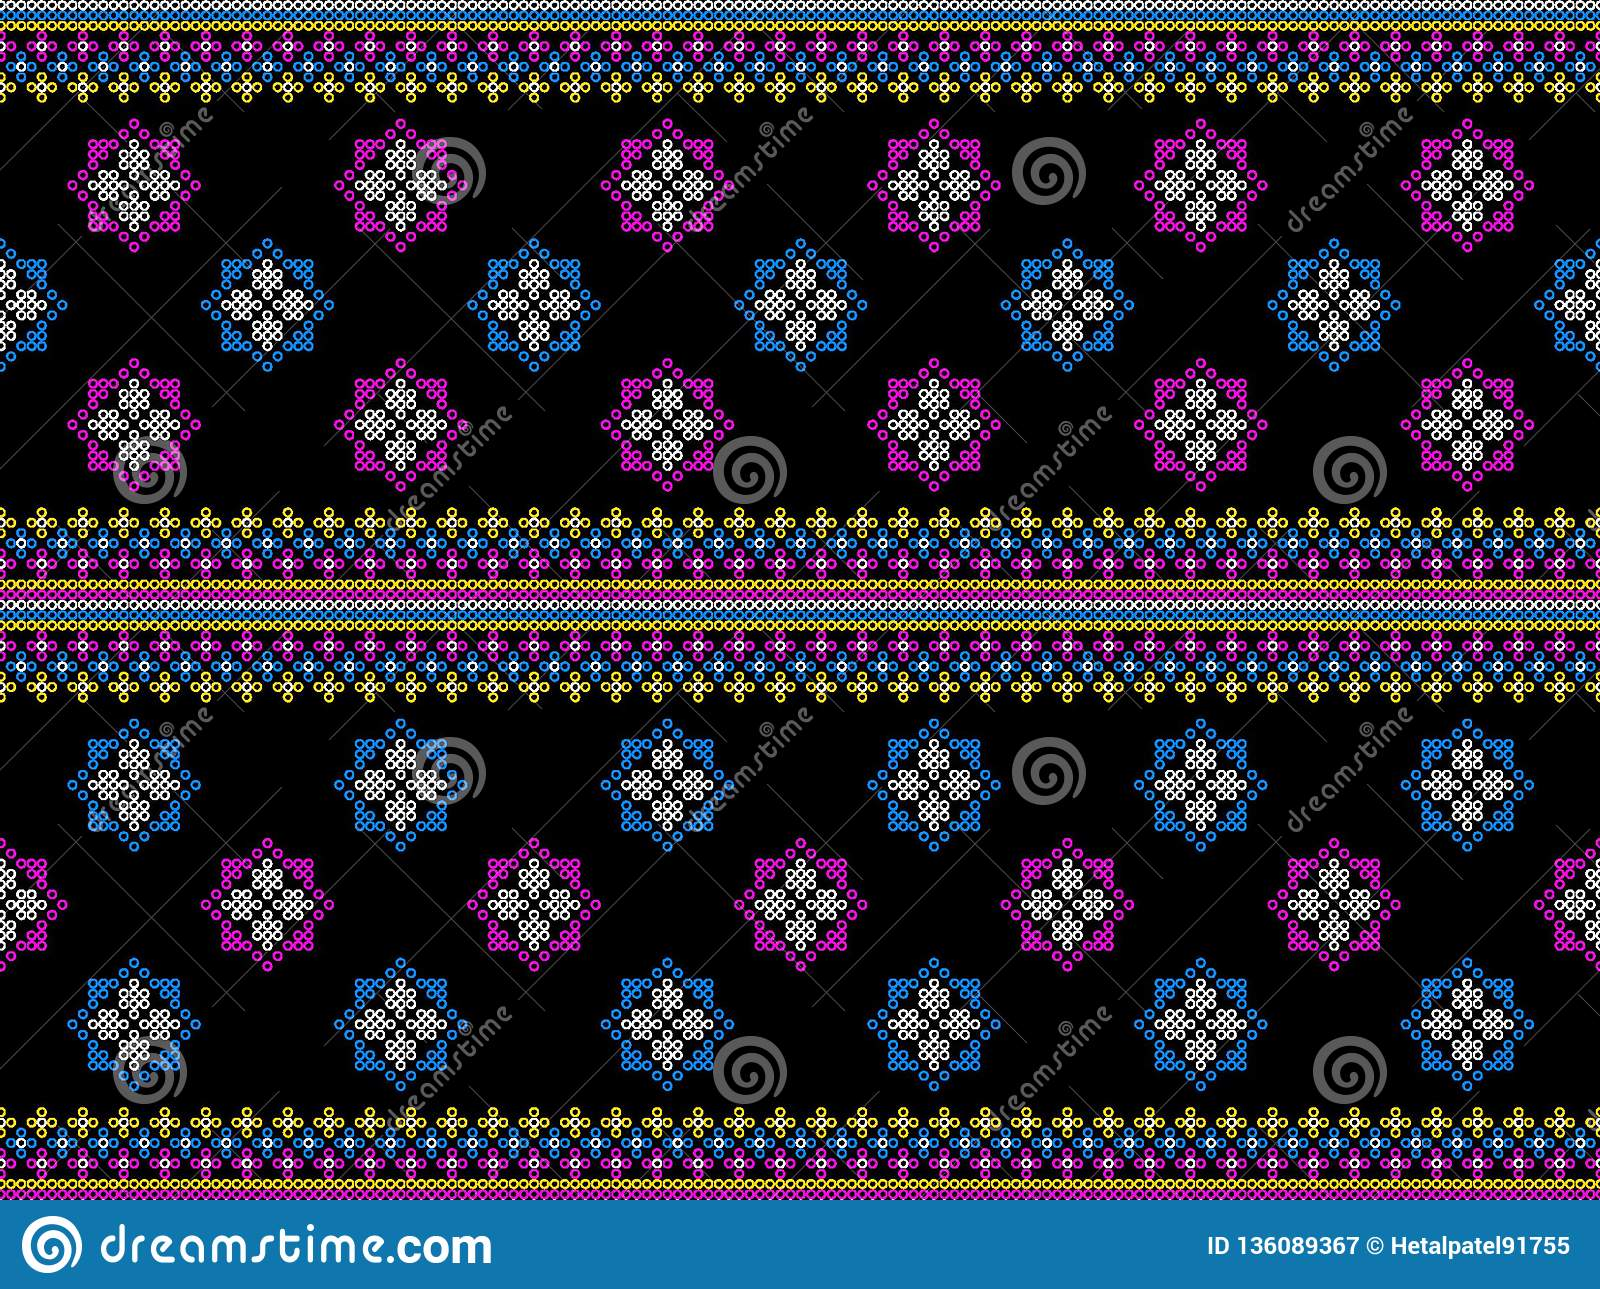 Geometric ethnic oriental ikat pattern traditional Design for background carpet wallpaper clothing